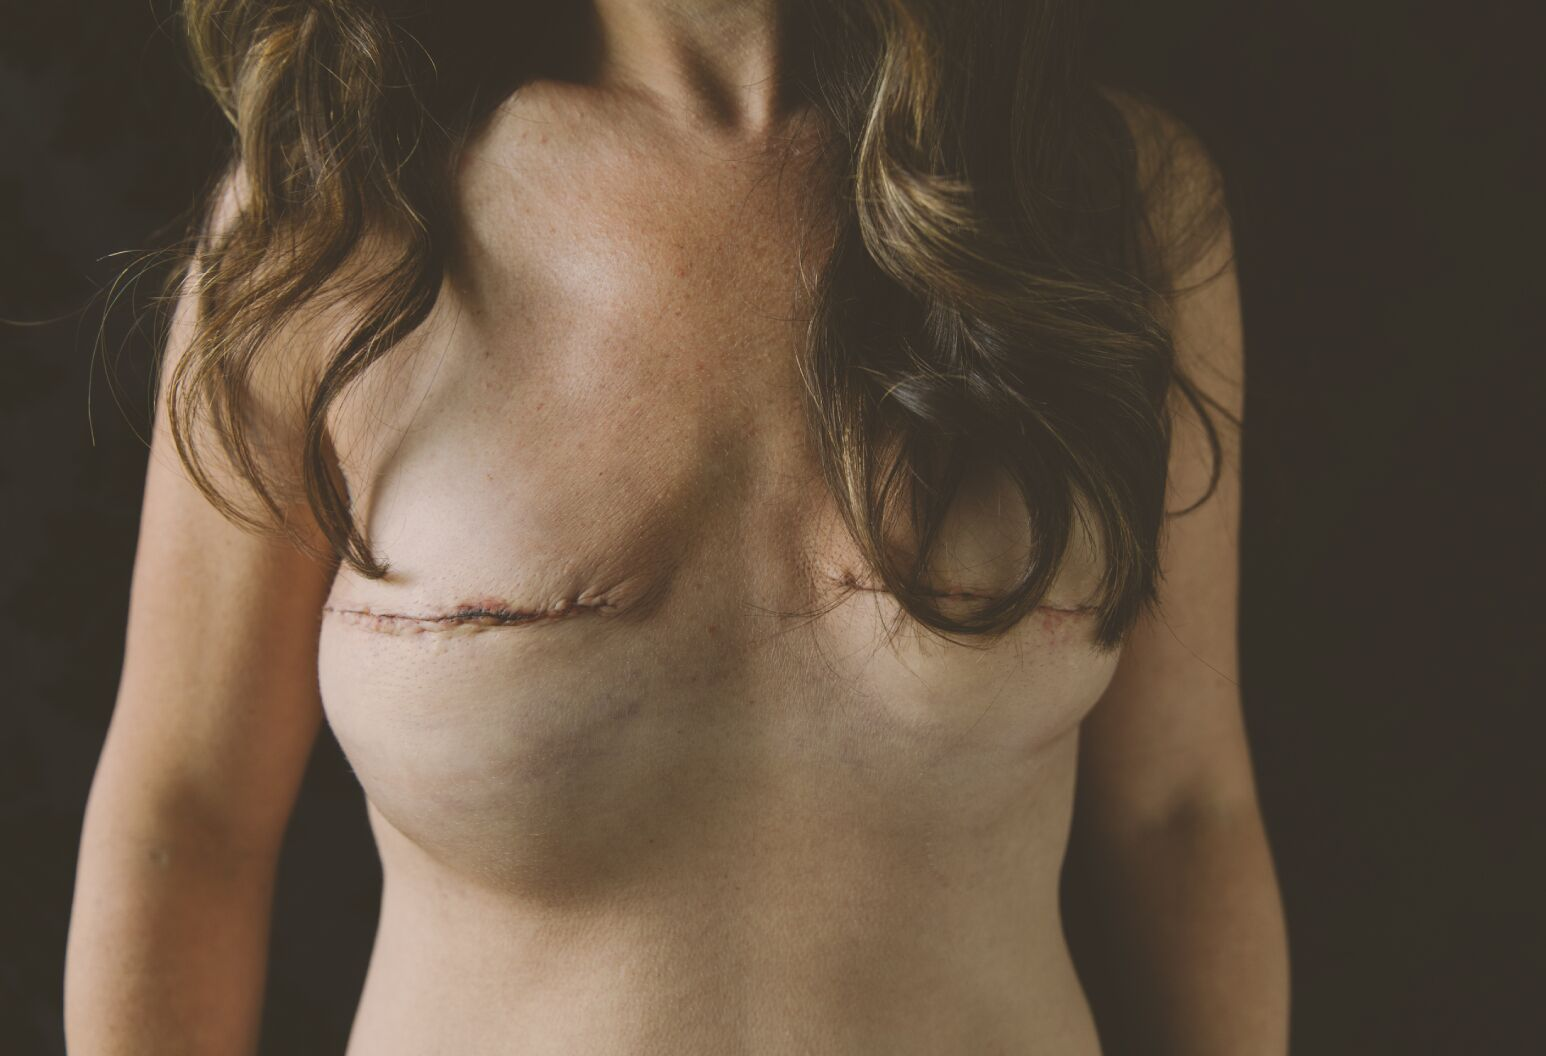 Post mastectomy and pre reconstruction